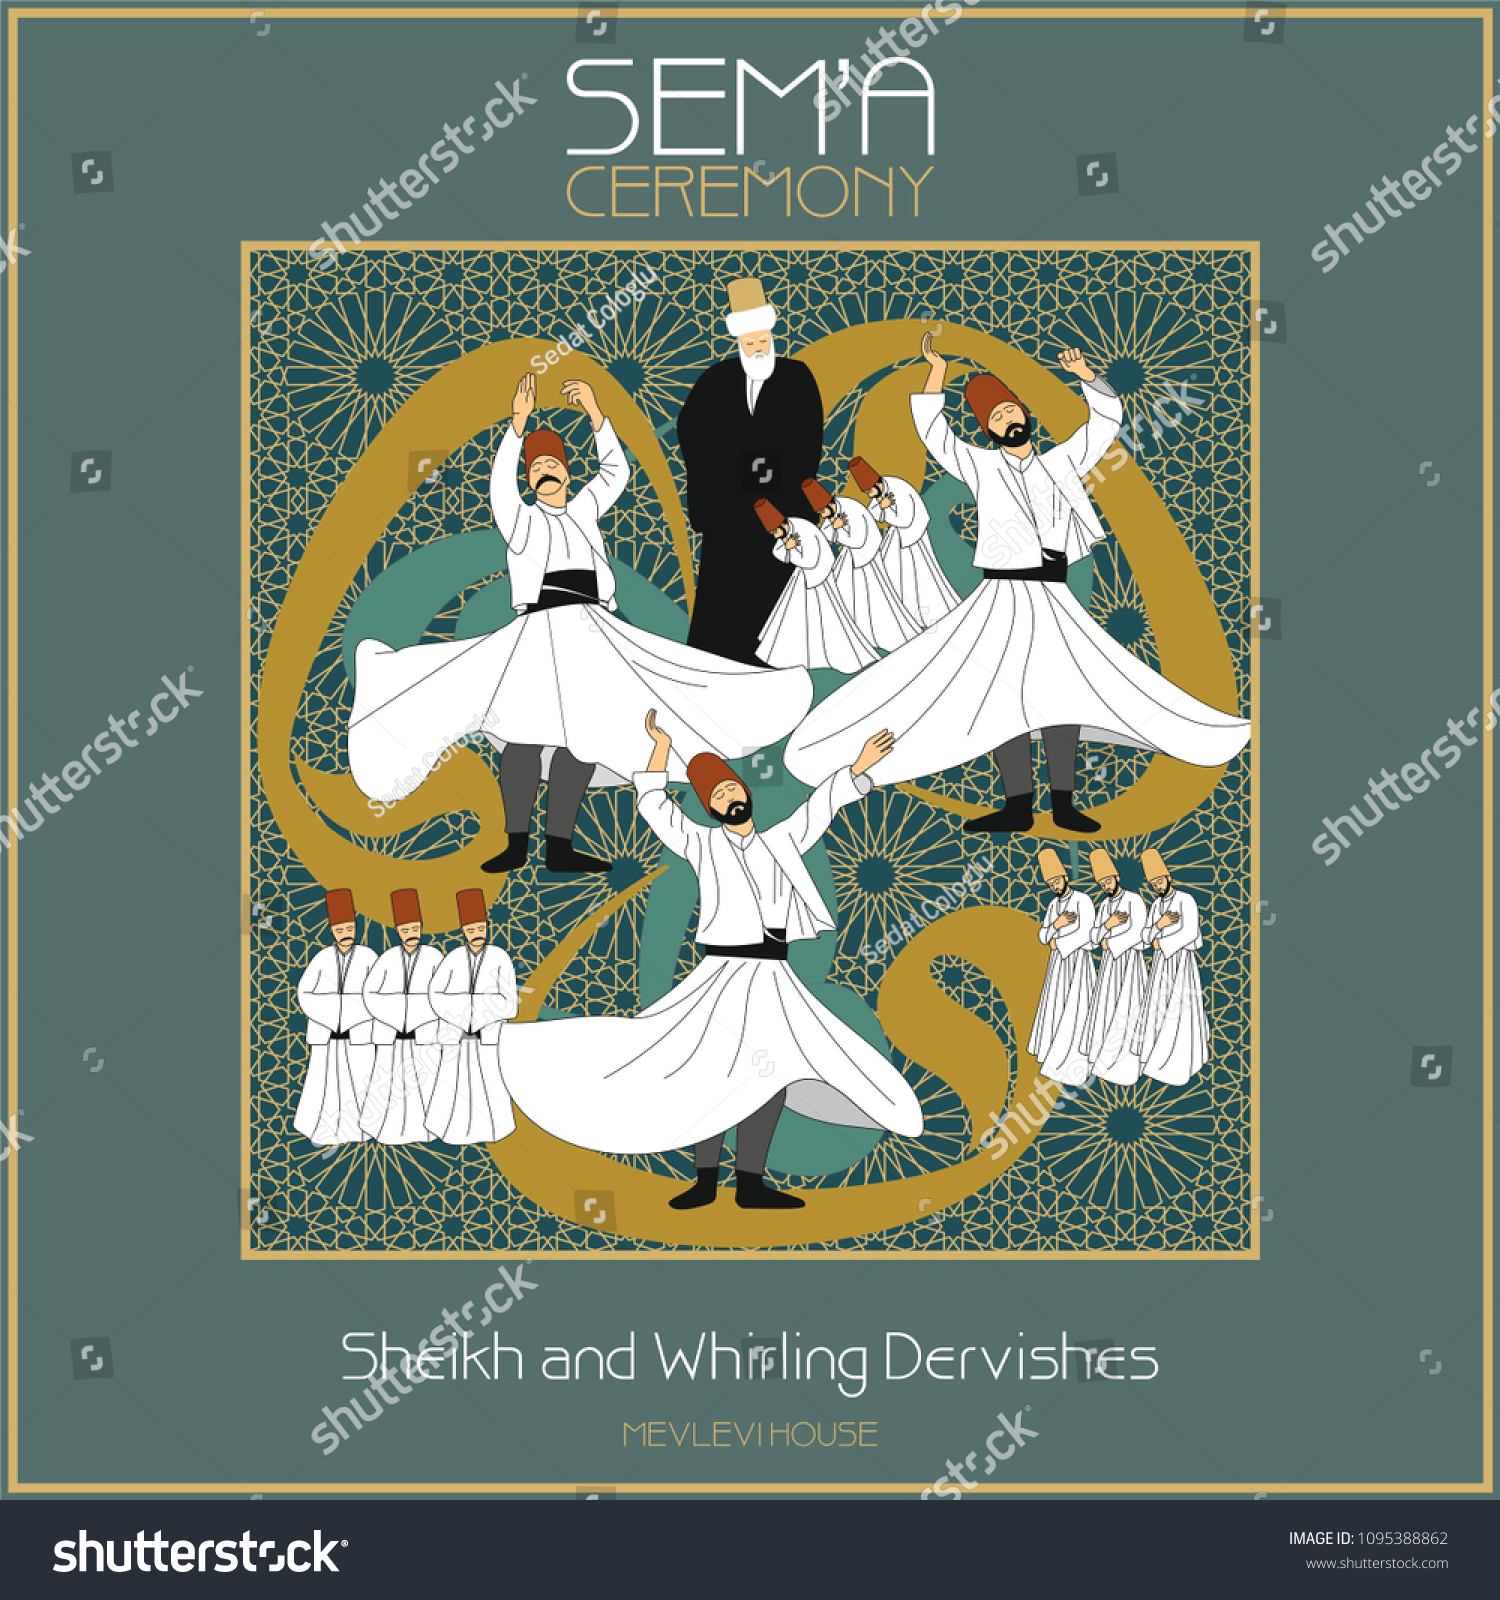 stock-vector-sema-is-a-ritual-of-mevlevi-belief-mevlevihane-is-where-these-ceremonies-took-place-this-graphic-1095388862